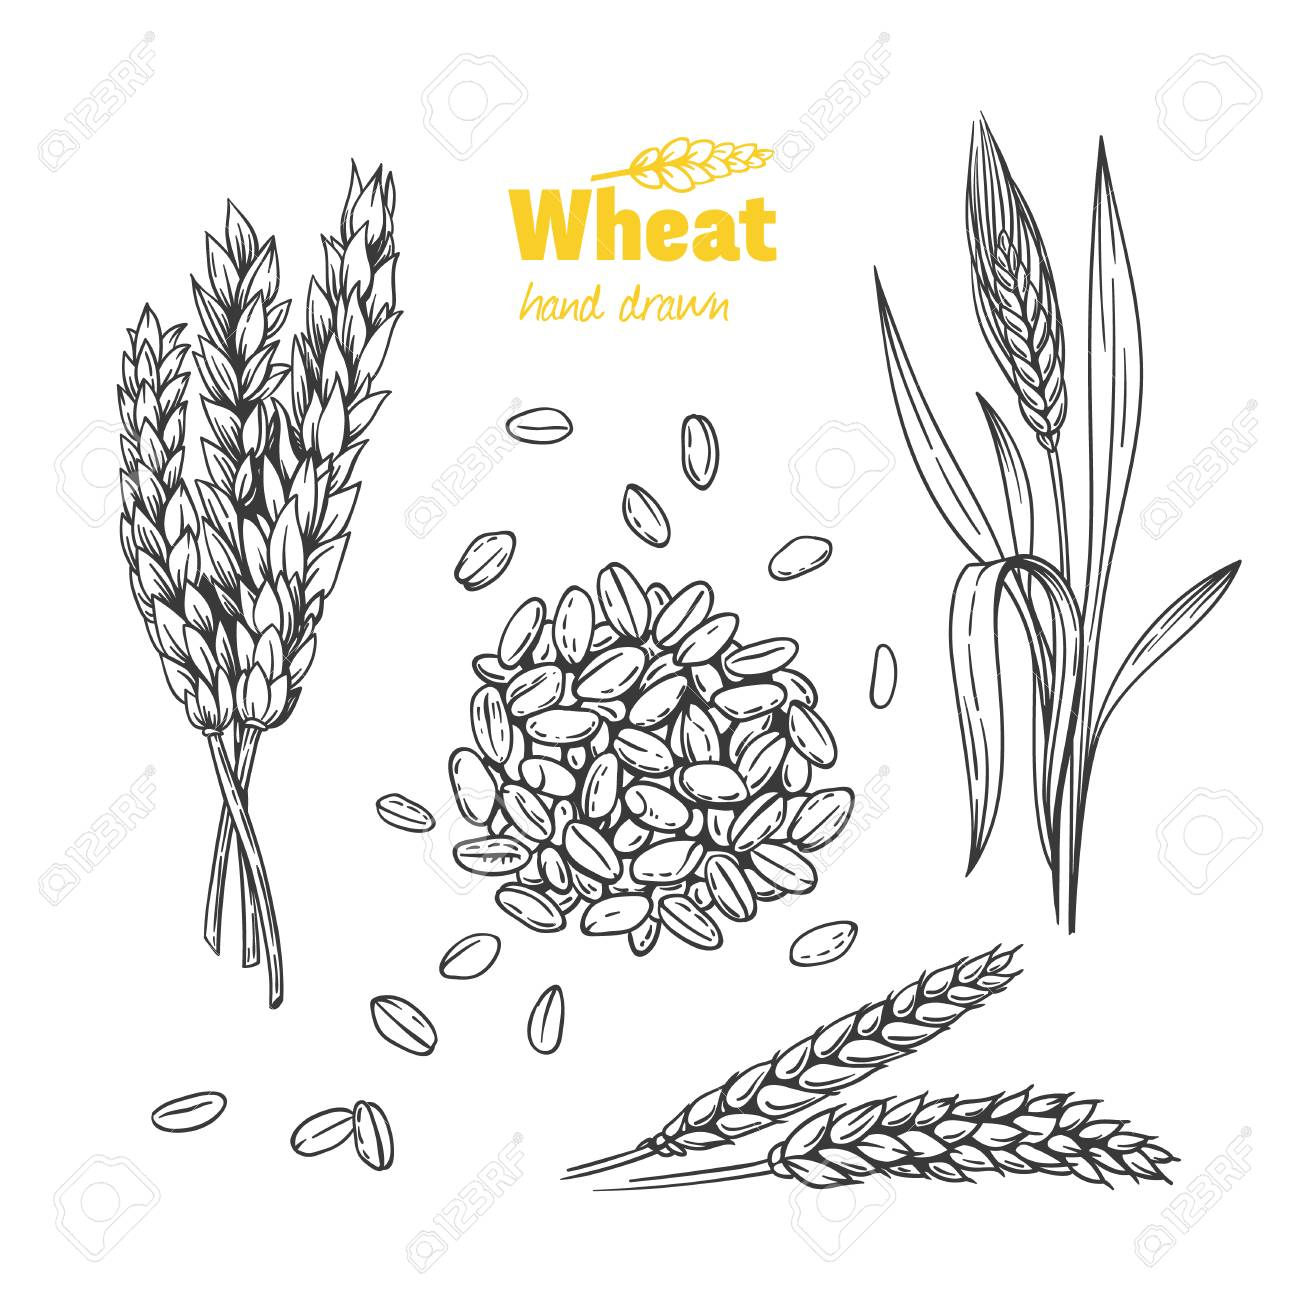 Sheaf of wheat Royalty Free Vector Image - VectorStock